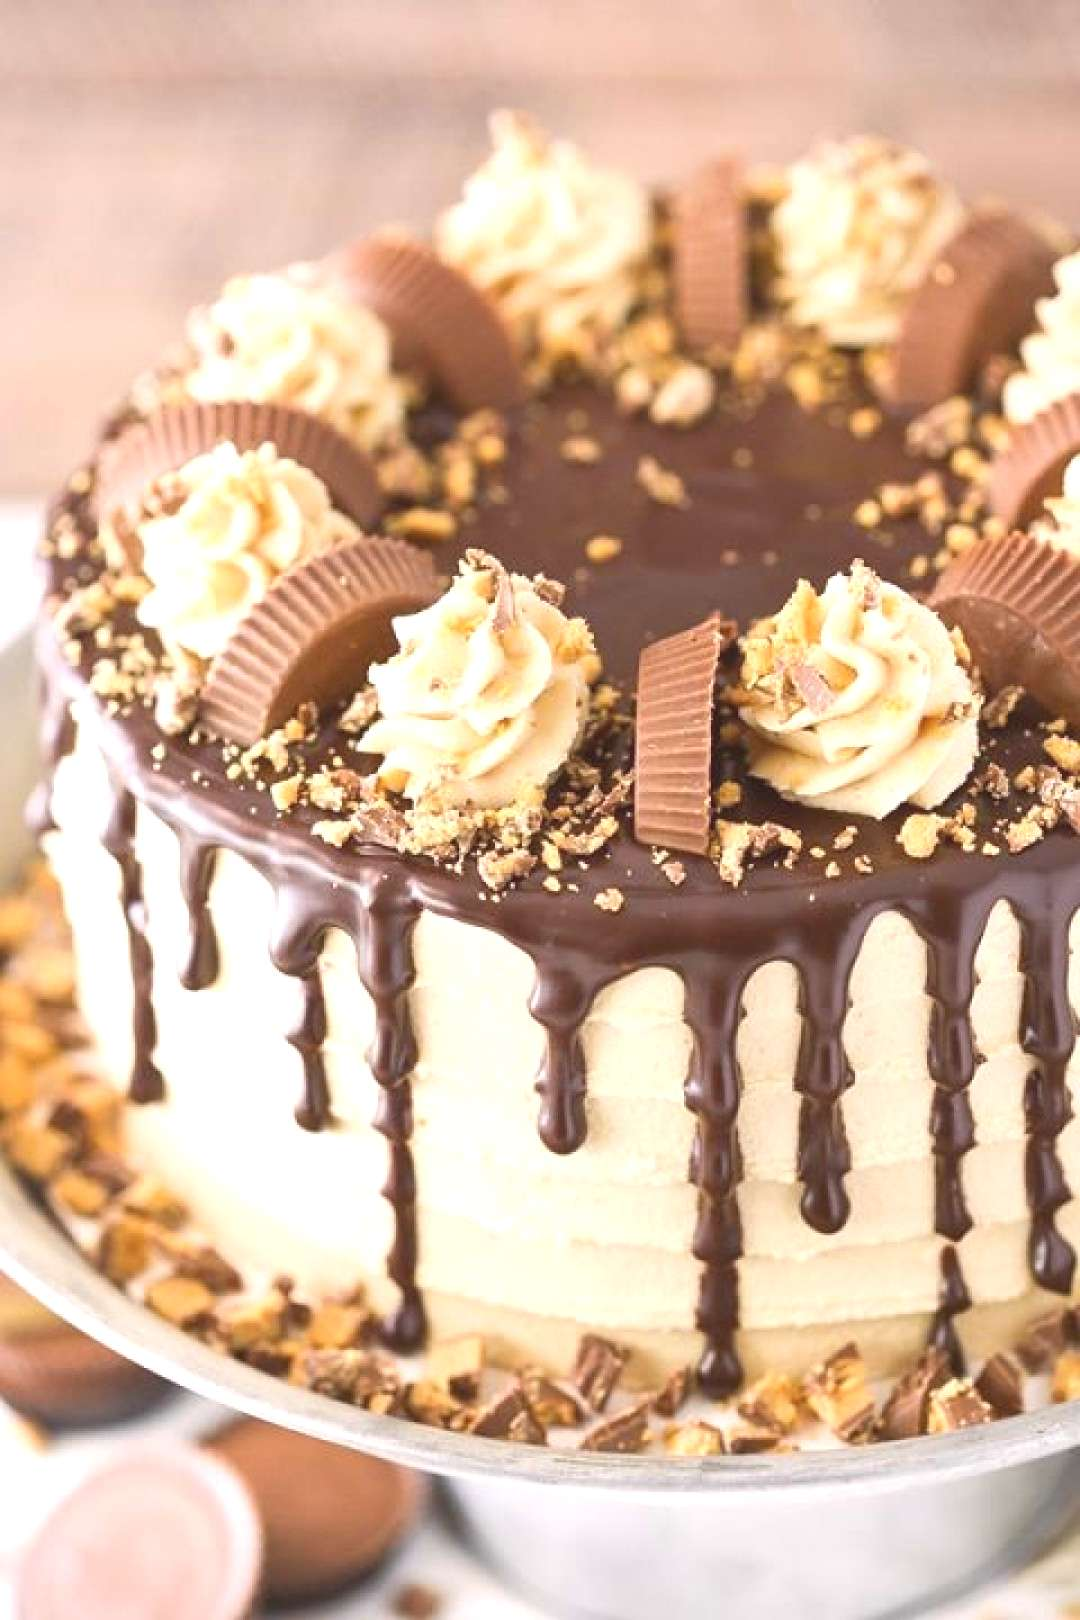 Peanut Butter Chocolate Layer Cake + Reese's Cups! -  Peanut Butter Chocolate Layer Cake – filled